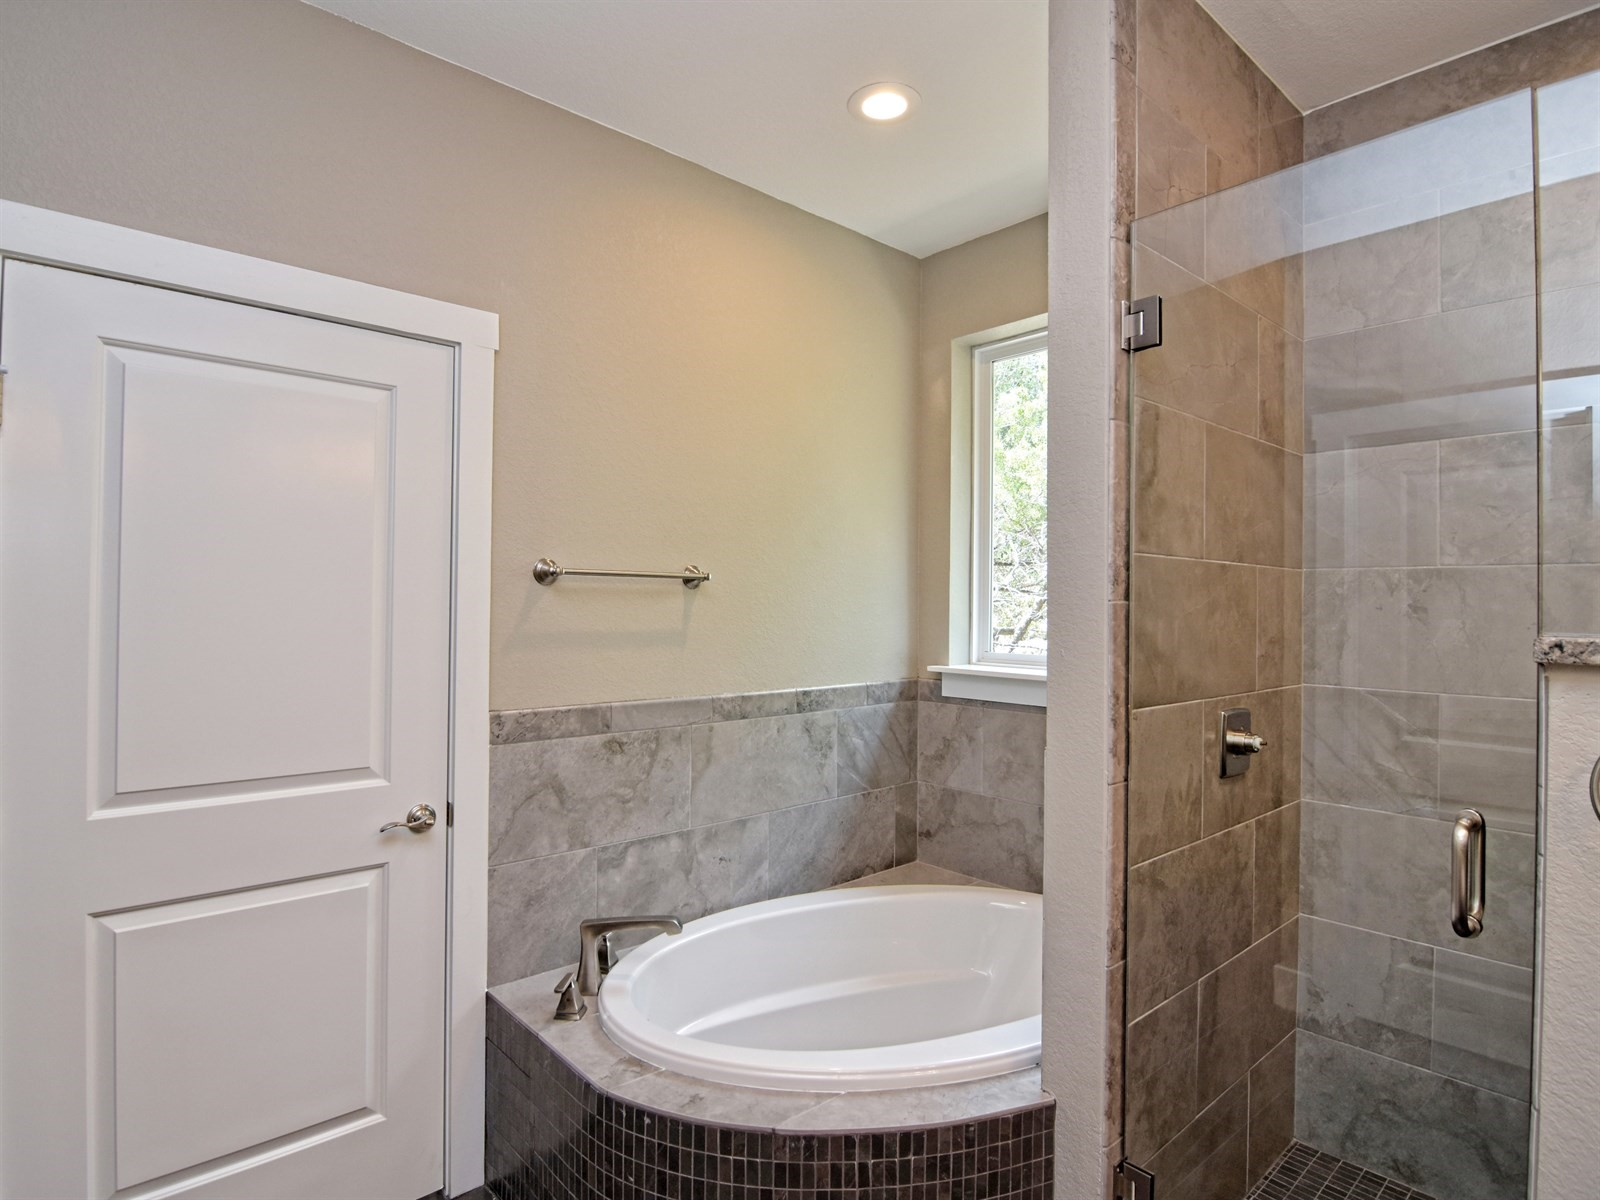 018_Master Bathroom 3.jpg